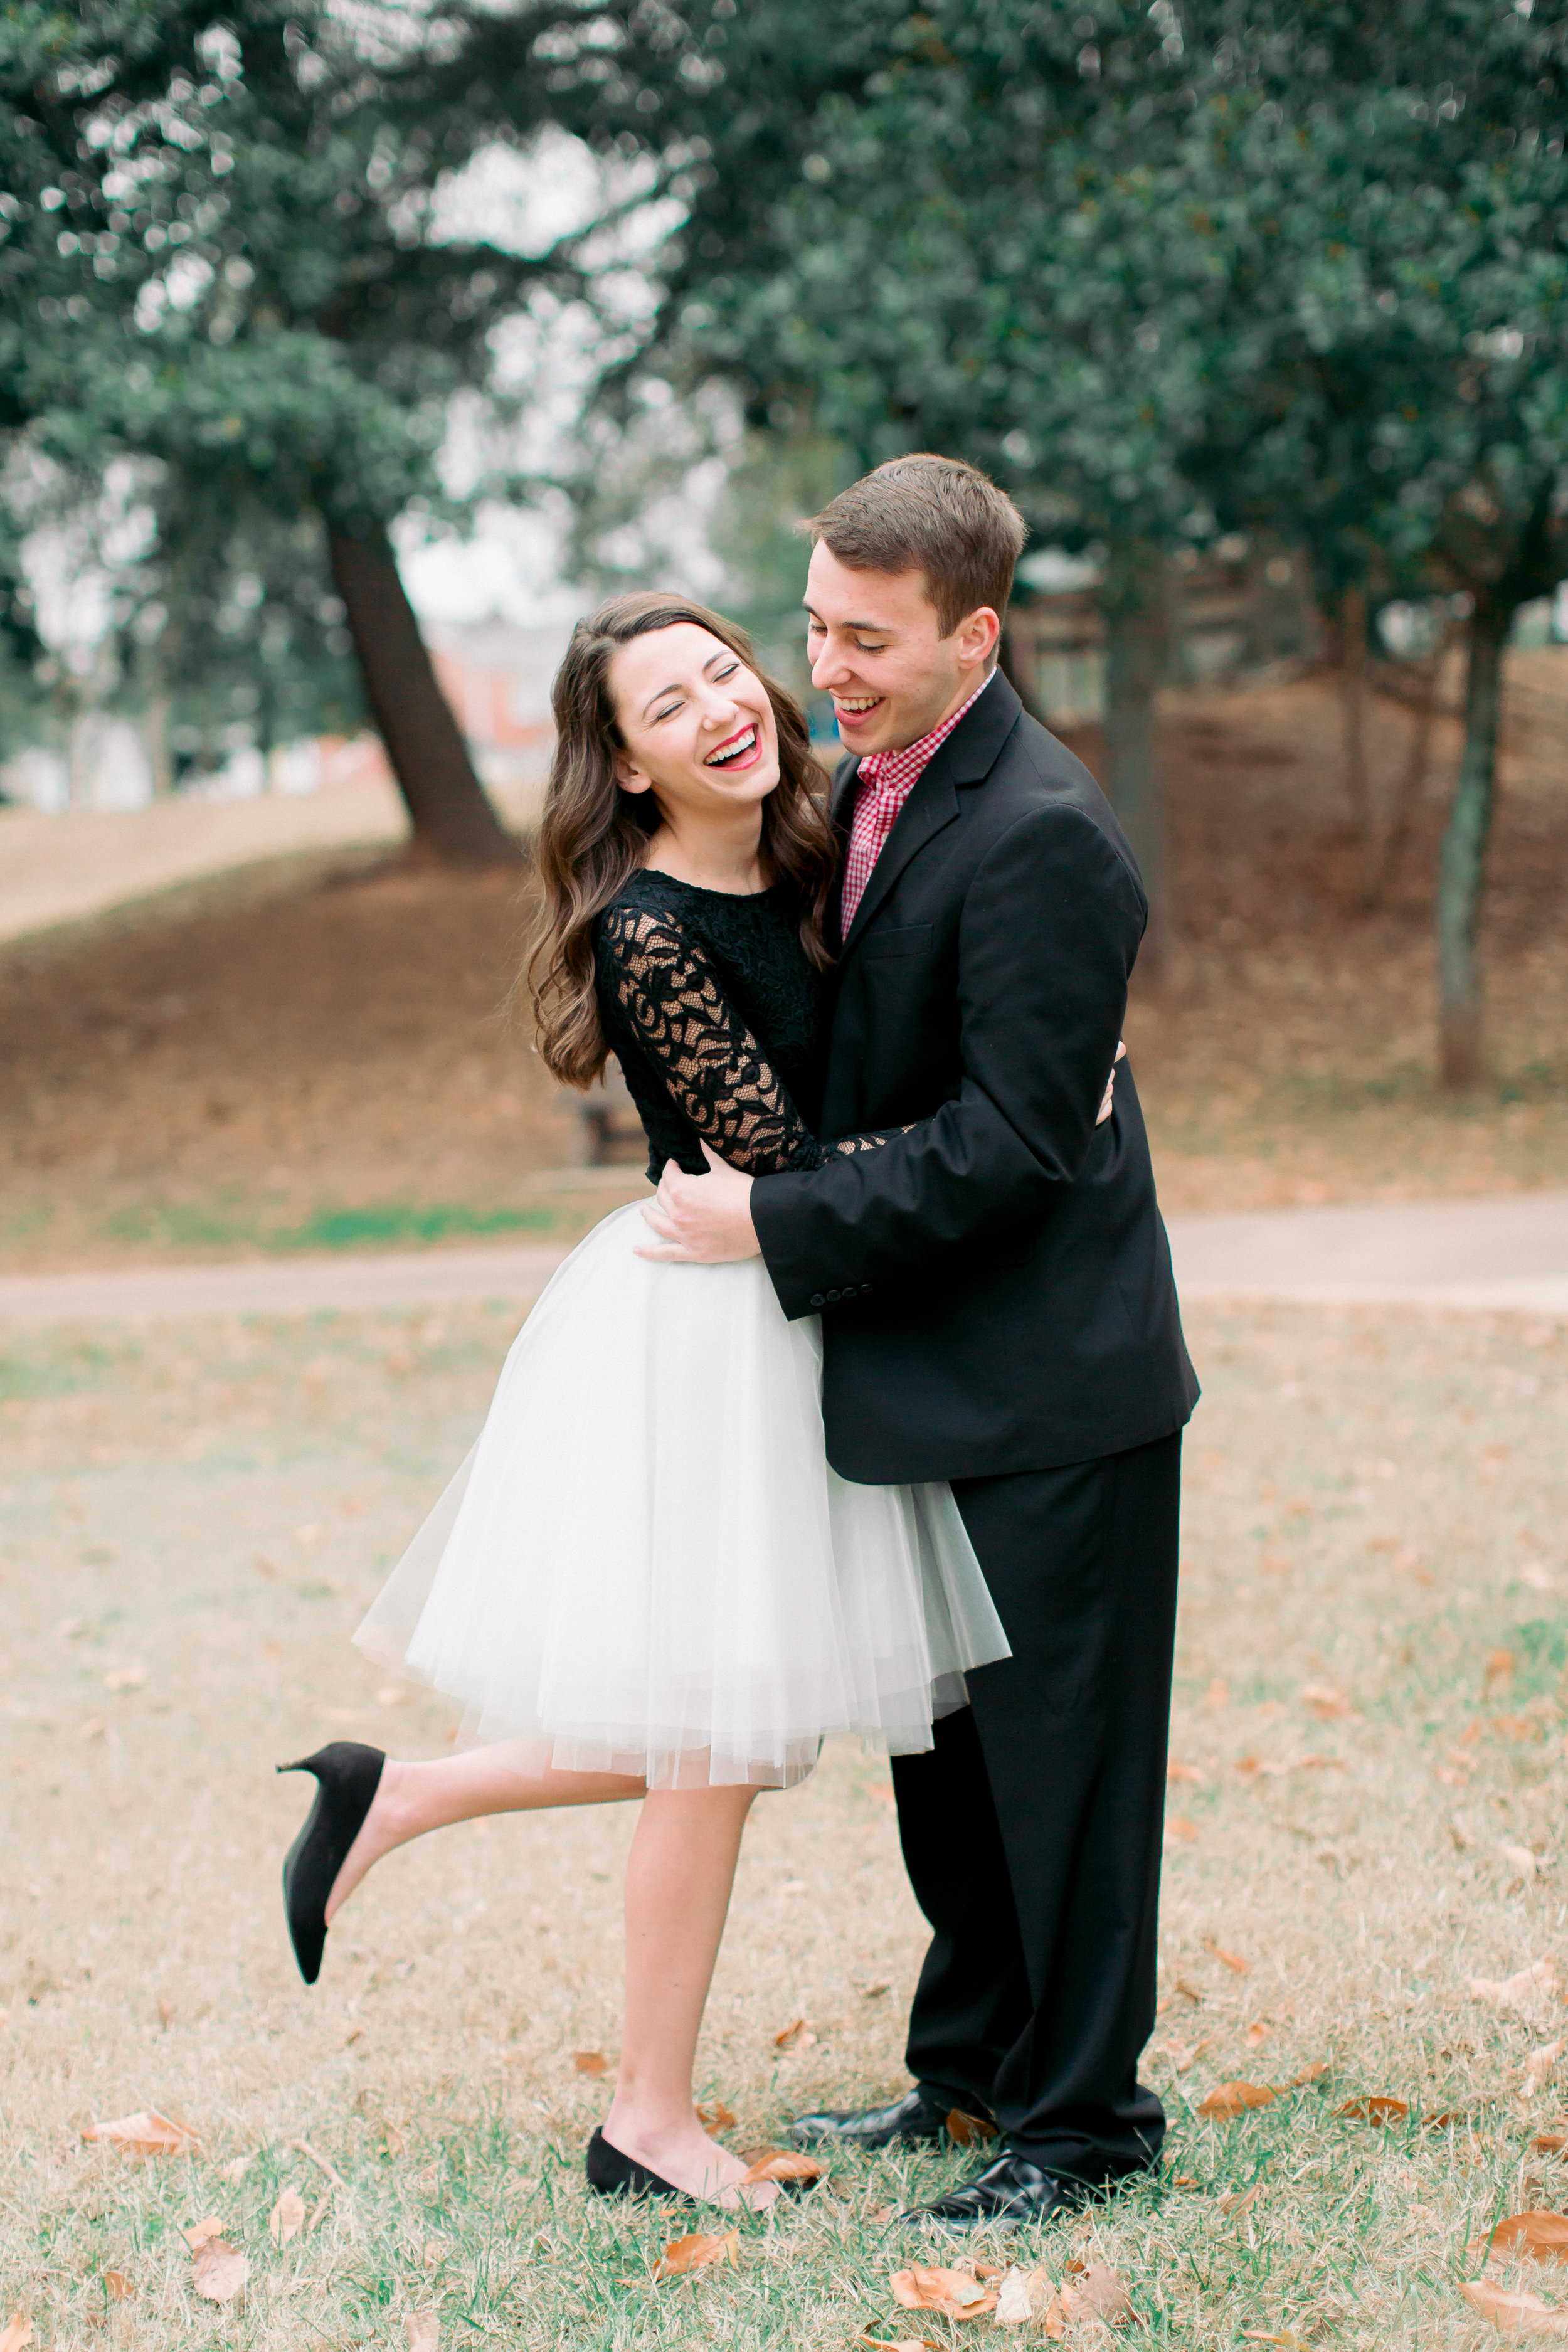 christmasengagement-7134.jpg